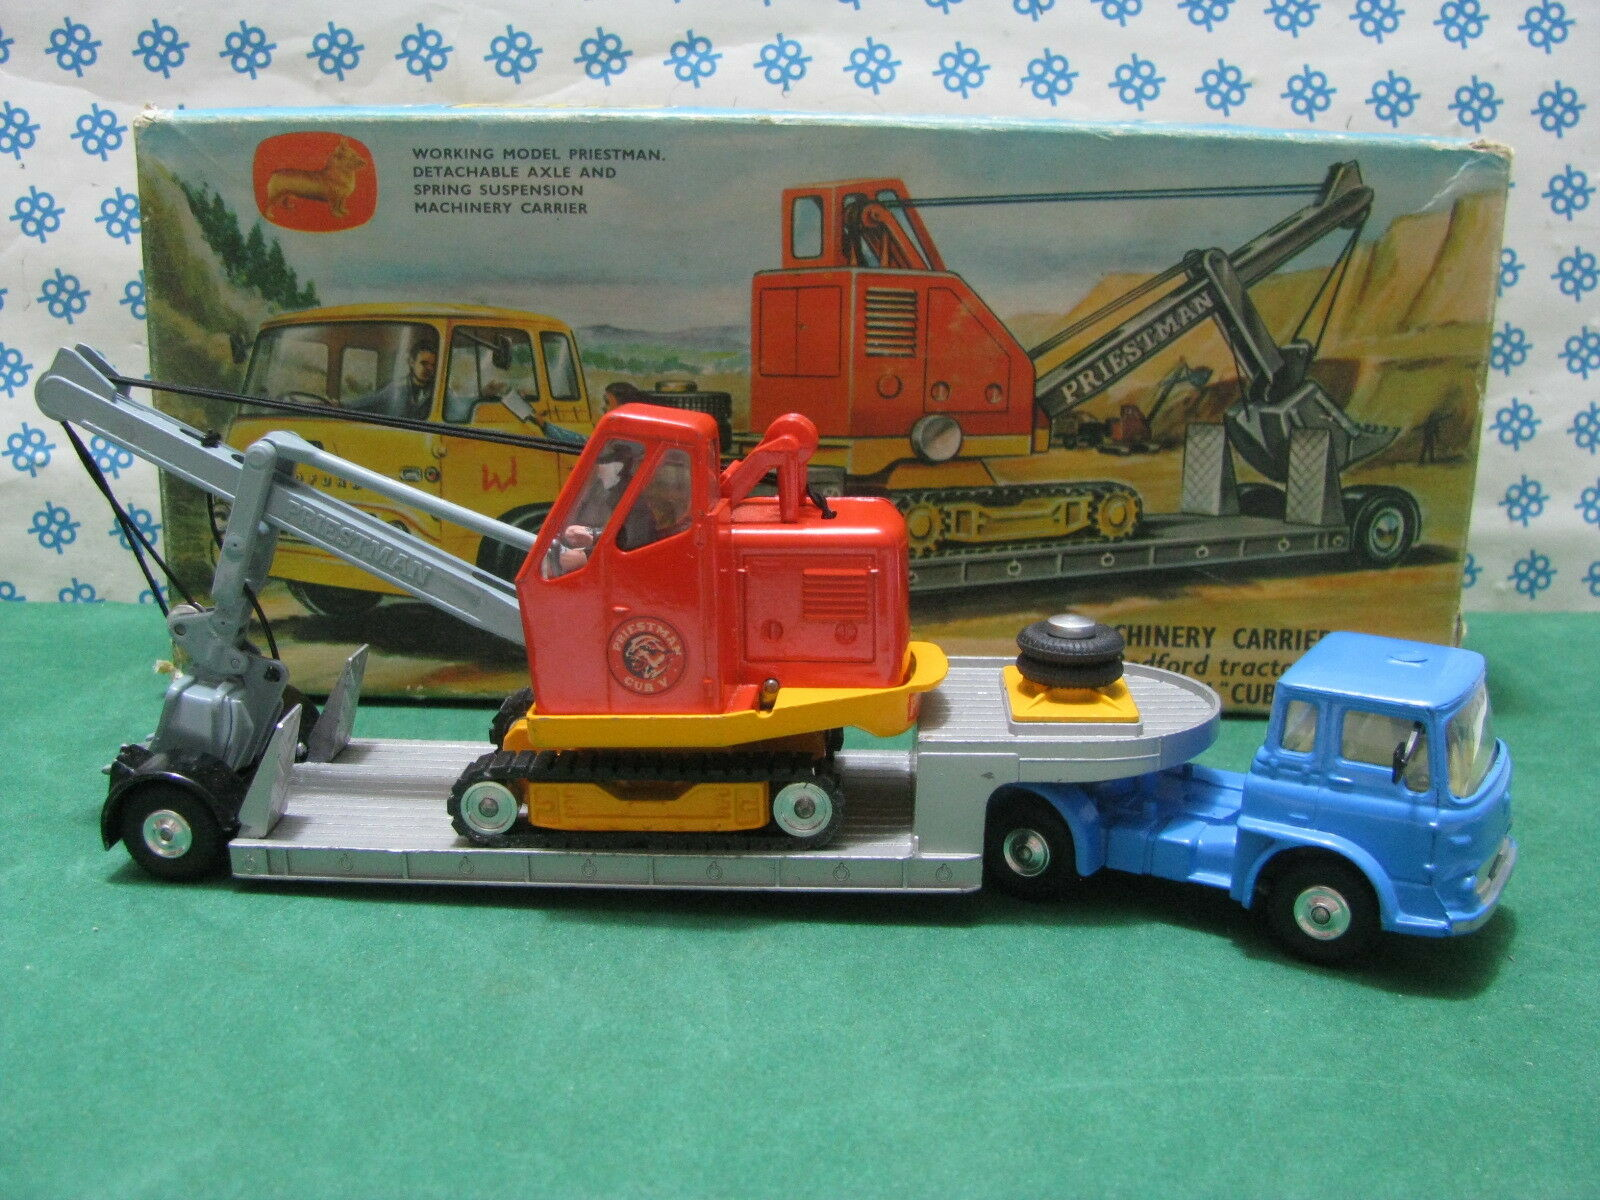 Vintage Bedford tractor unit and Priestman cub Shovel-corgi toys GS 27